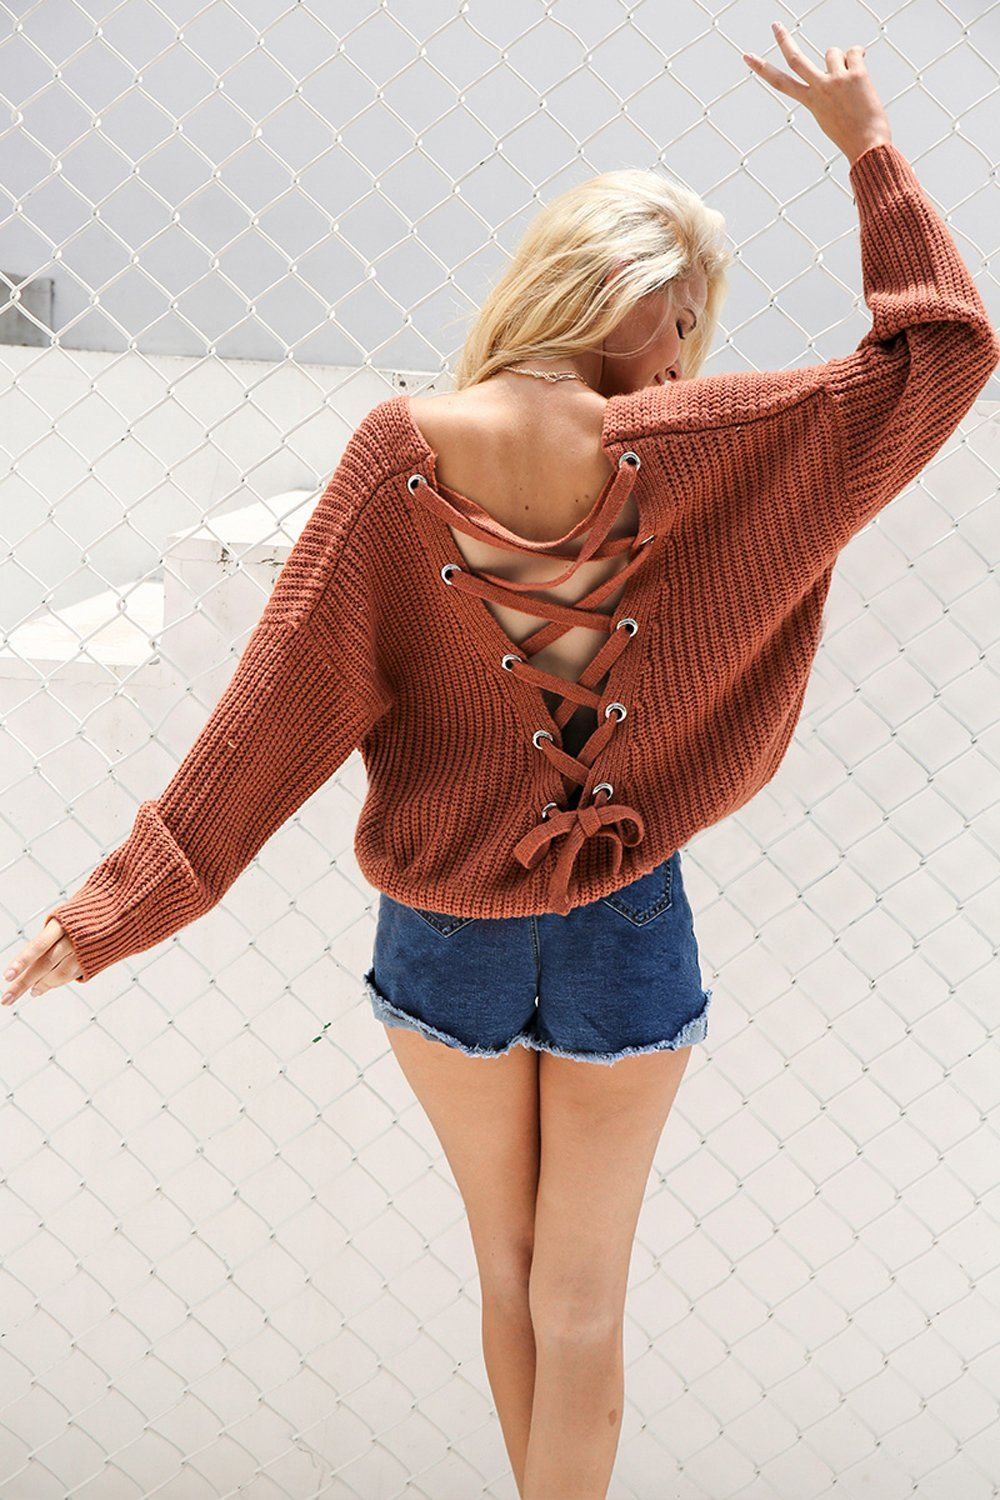 Betsy Criss Cross Back Lace Up Oversized Knitted S